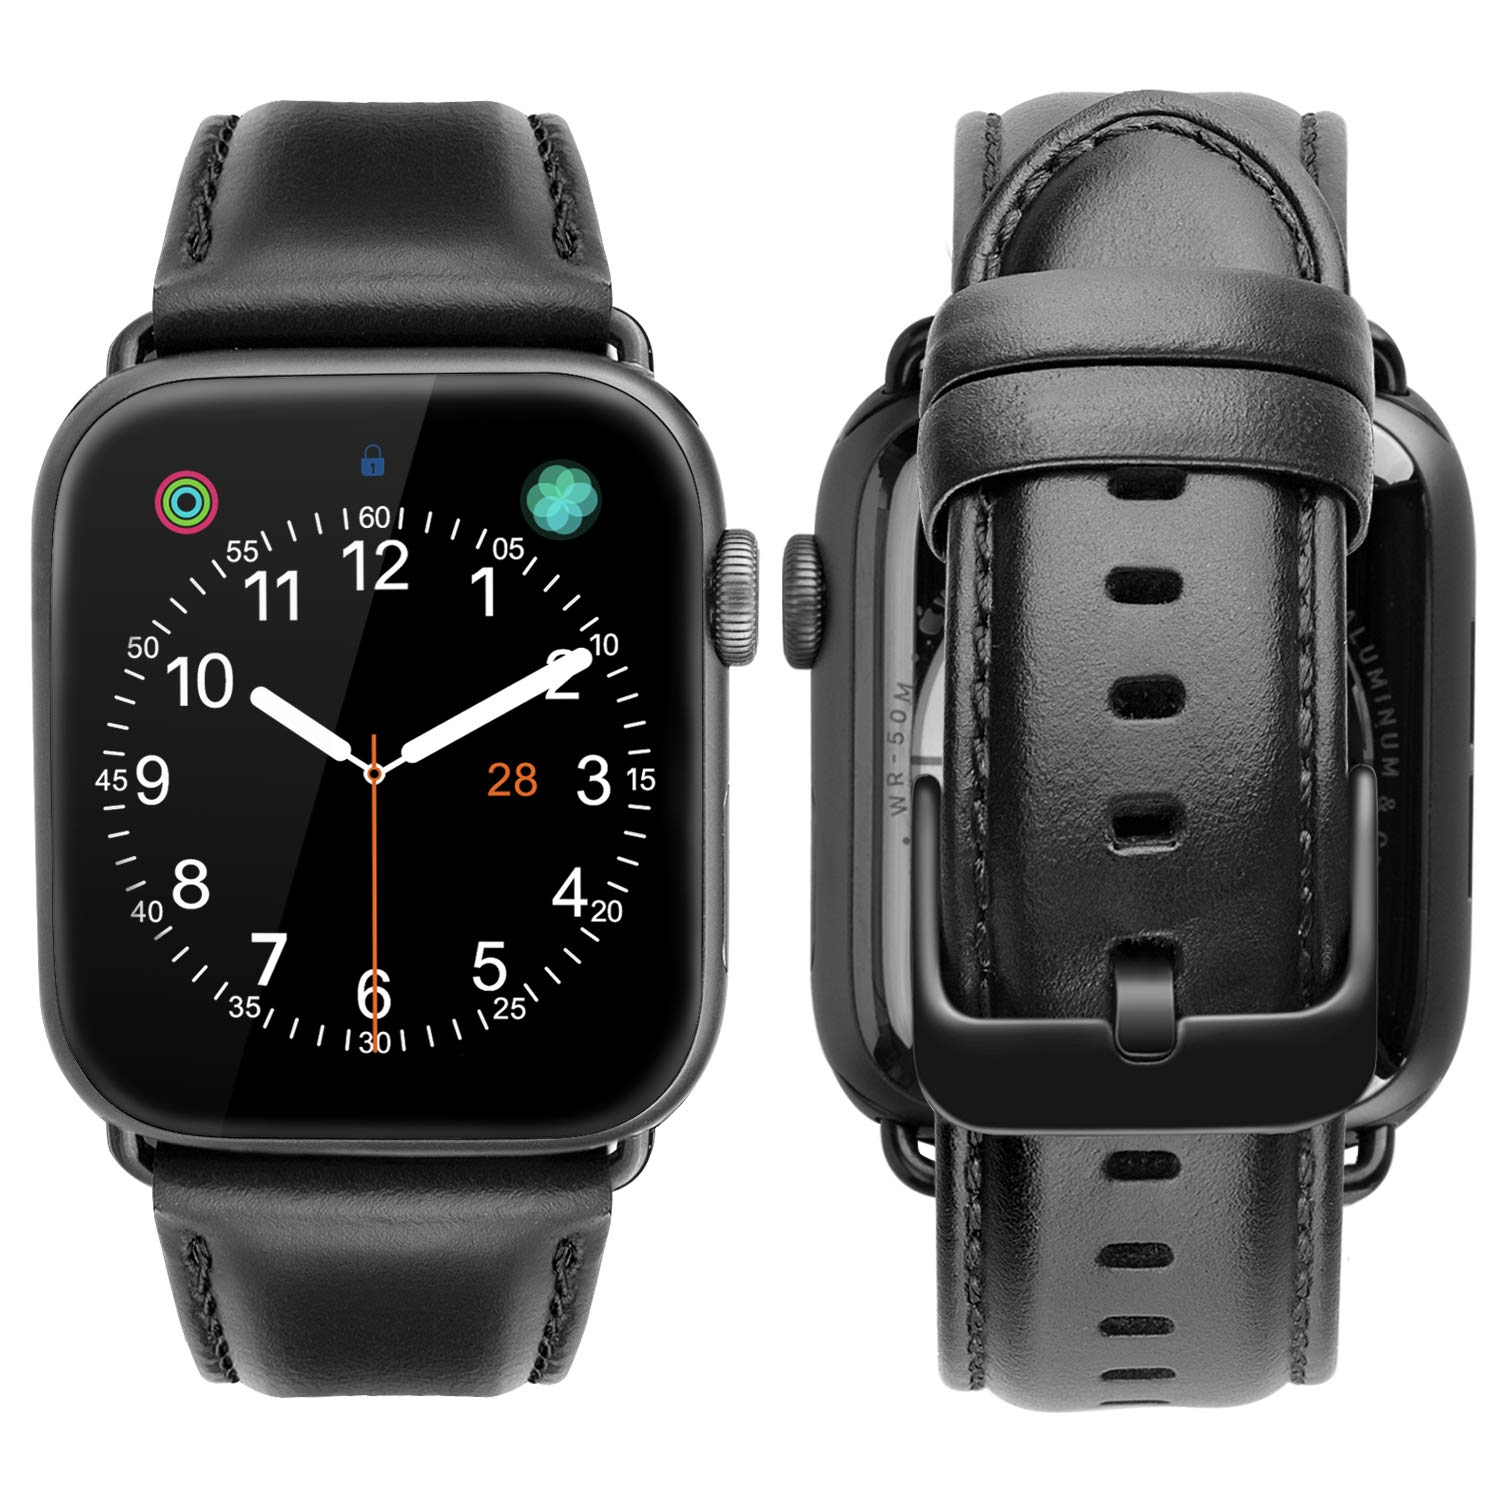 Malla Cuero Para Apple Watch (42/44mm) Ibazal [7pkvxvy6]